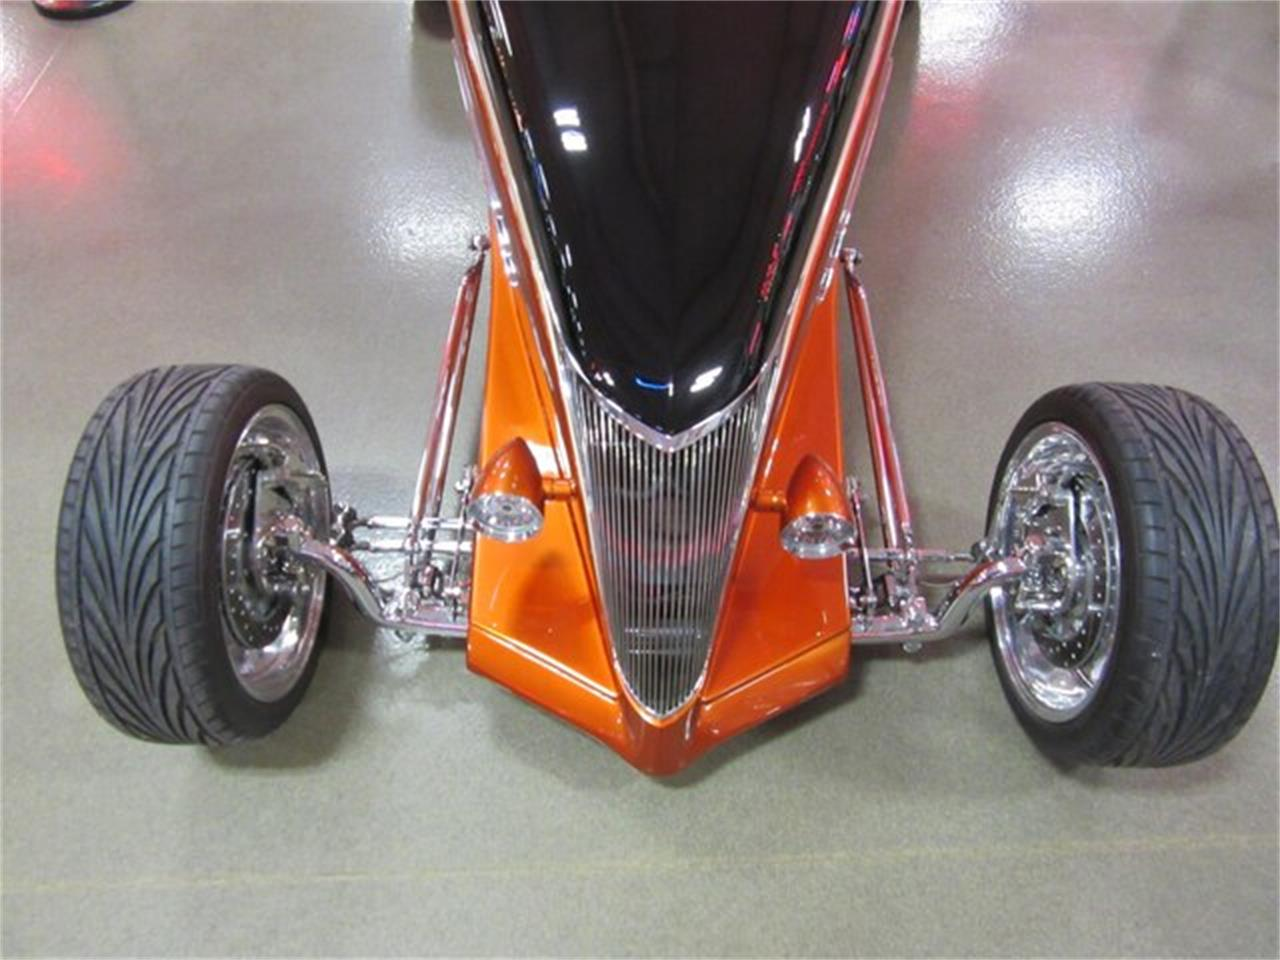 2006 Custom Roadster for sale in Greenwood, IN – photo 6